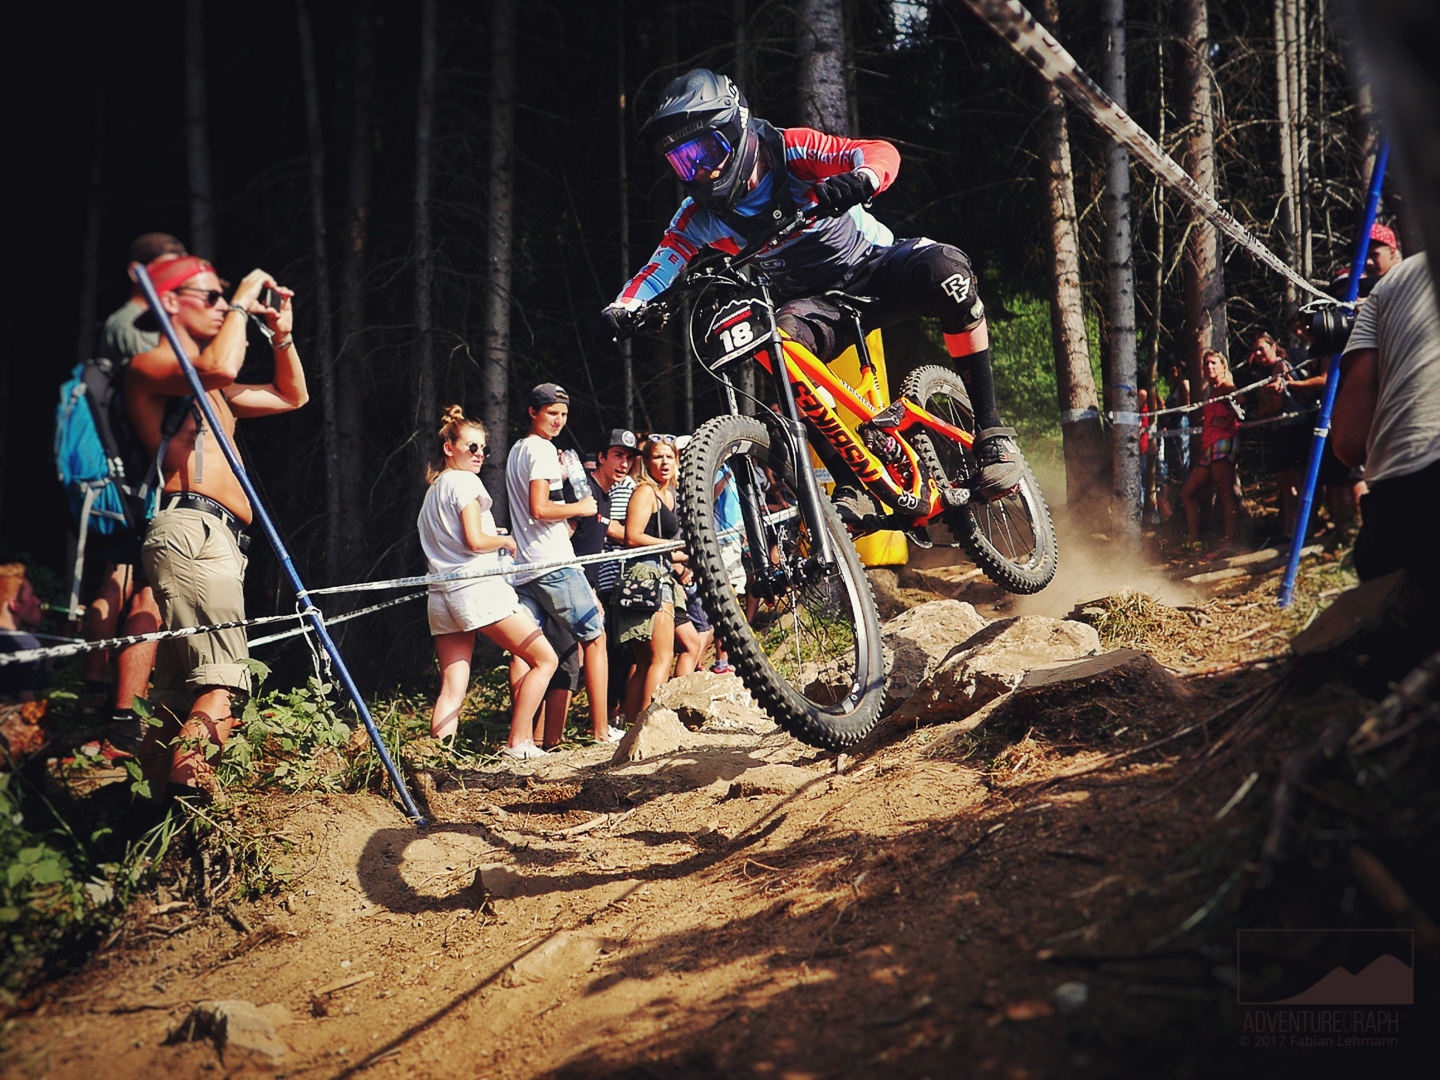 Available for everyone, photo of the downhill bike race at Innsbruck Crankworx in the summer.